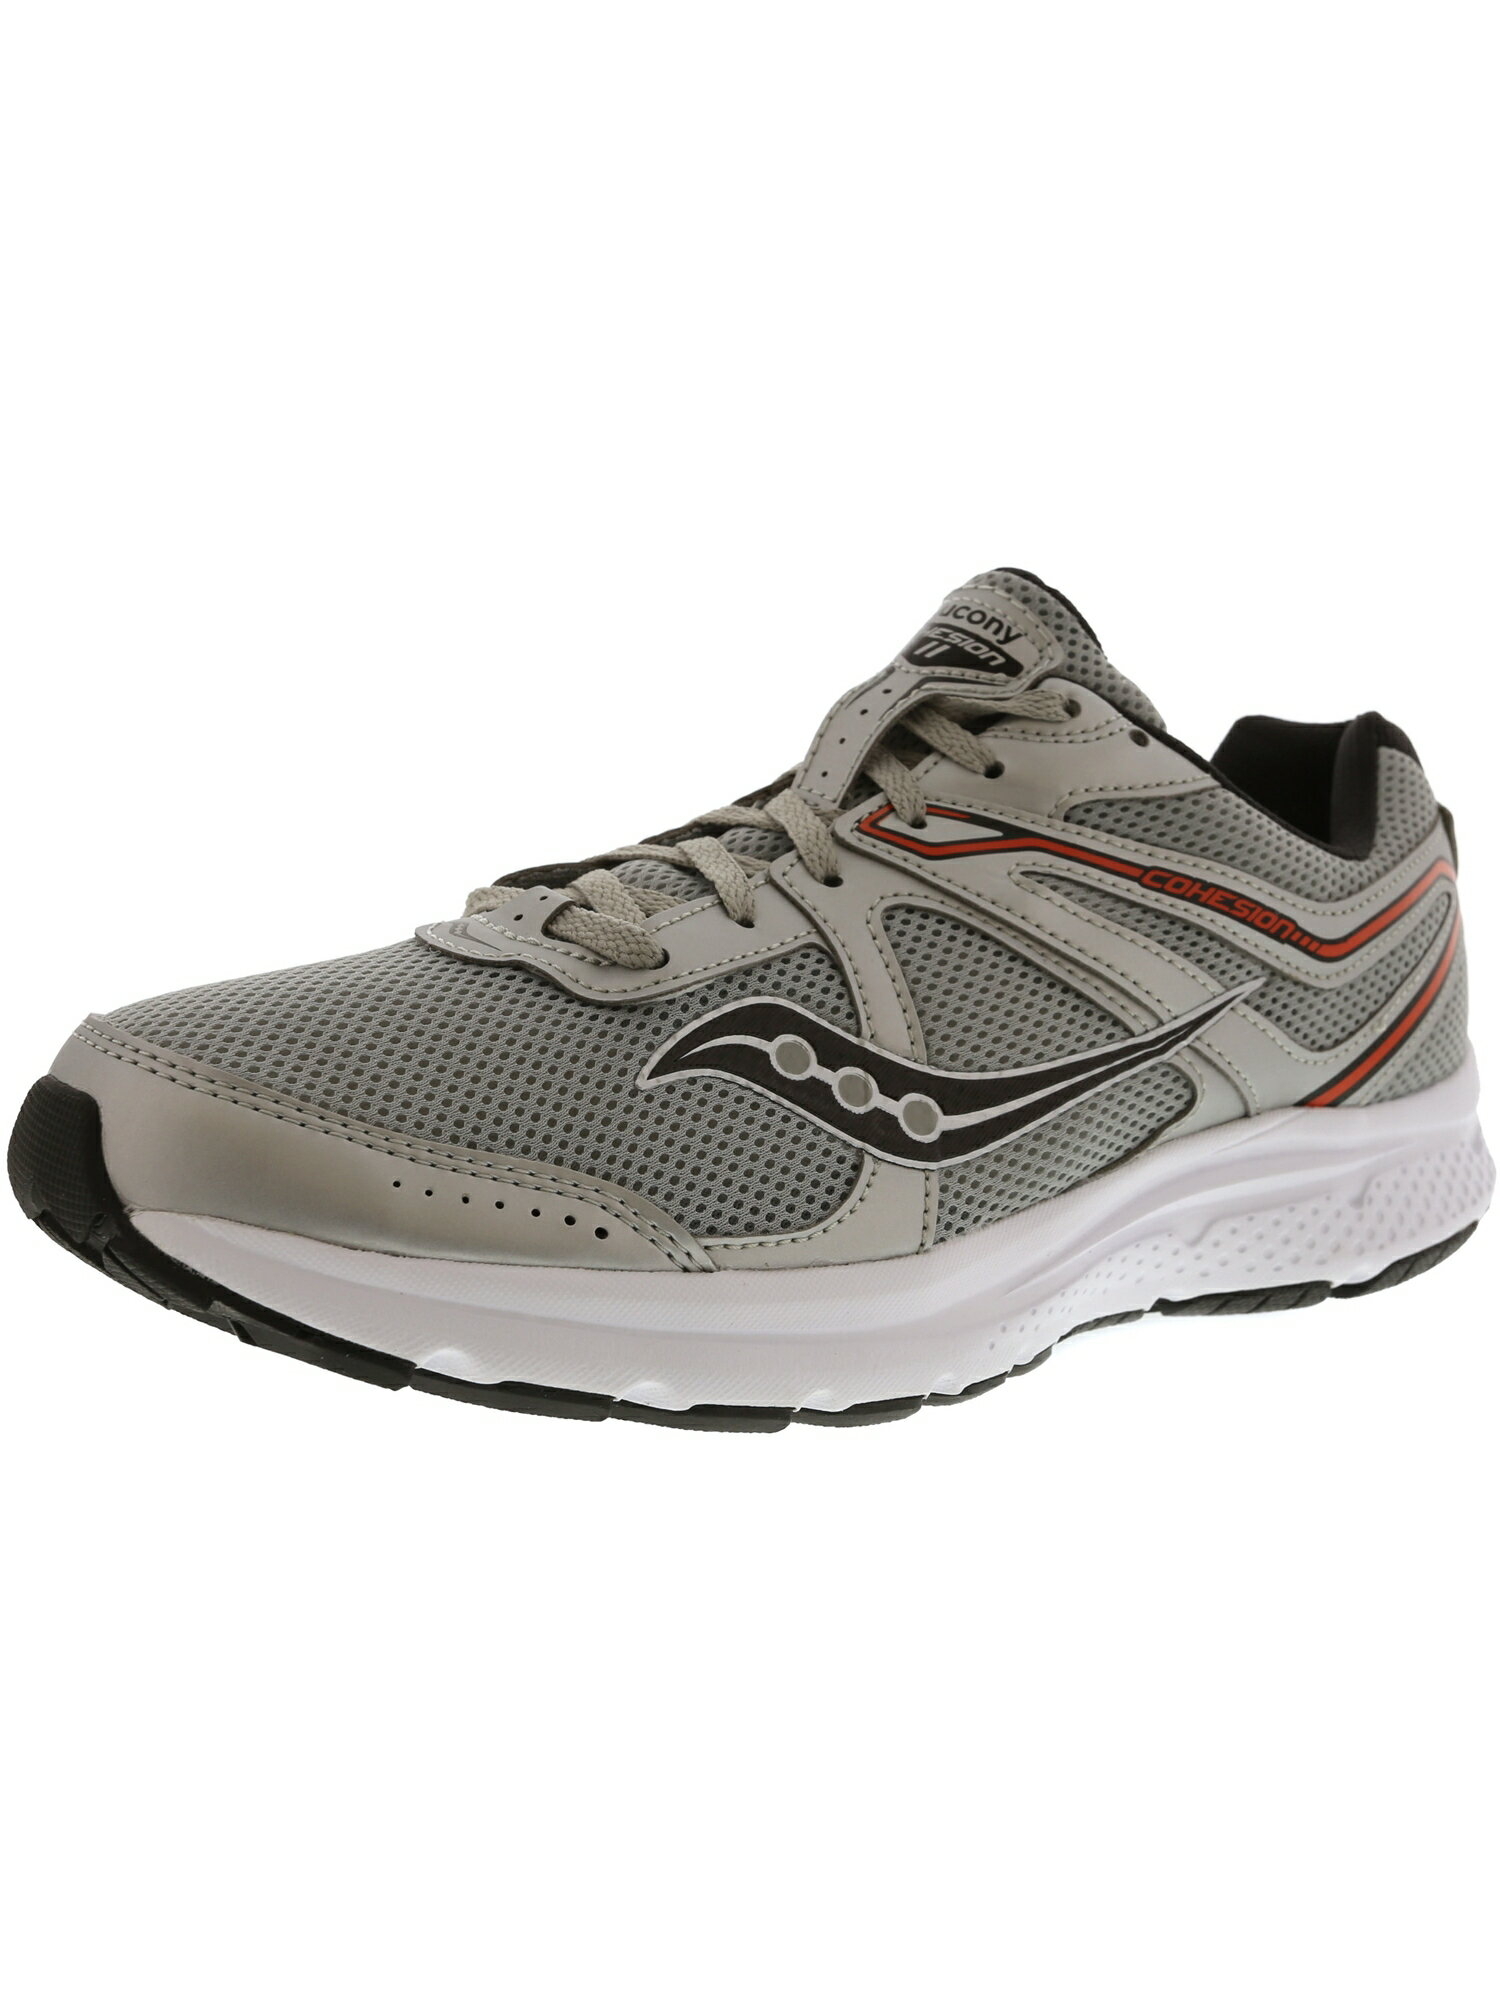 deb1c1ae Saucony Men's Grid Cohesion 11 Ankle-High Mesh Running Shoe